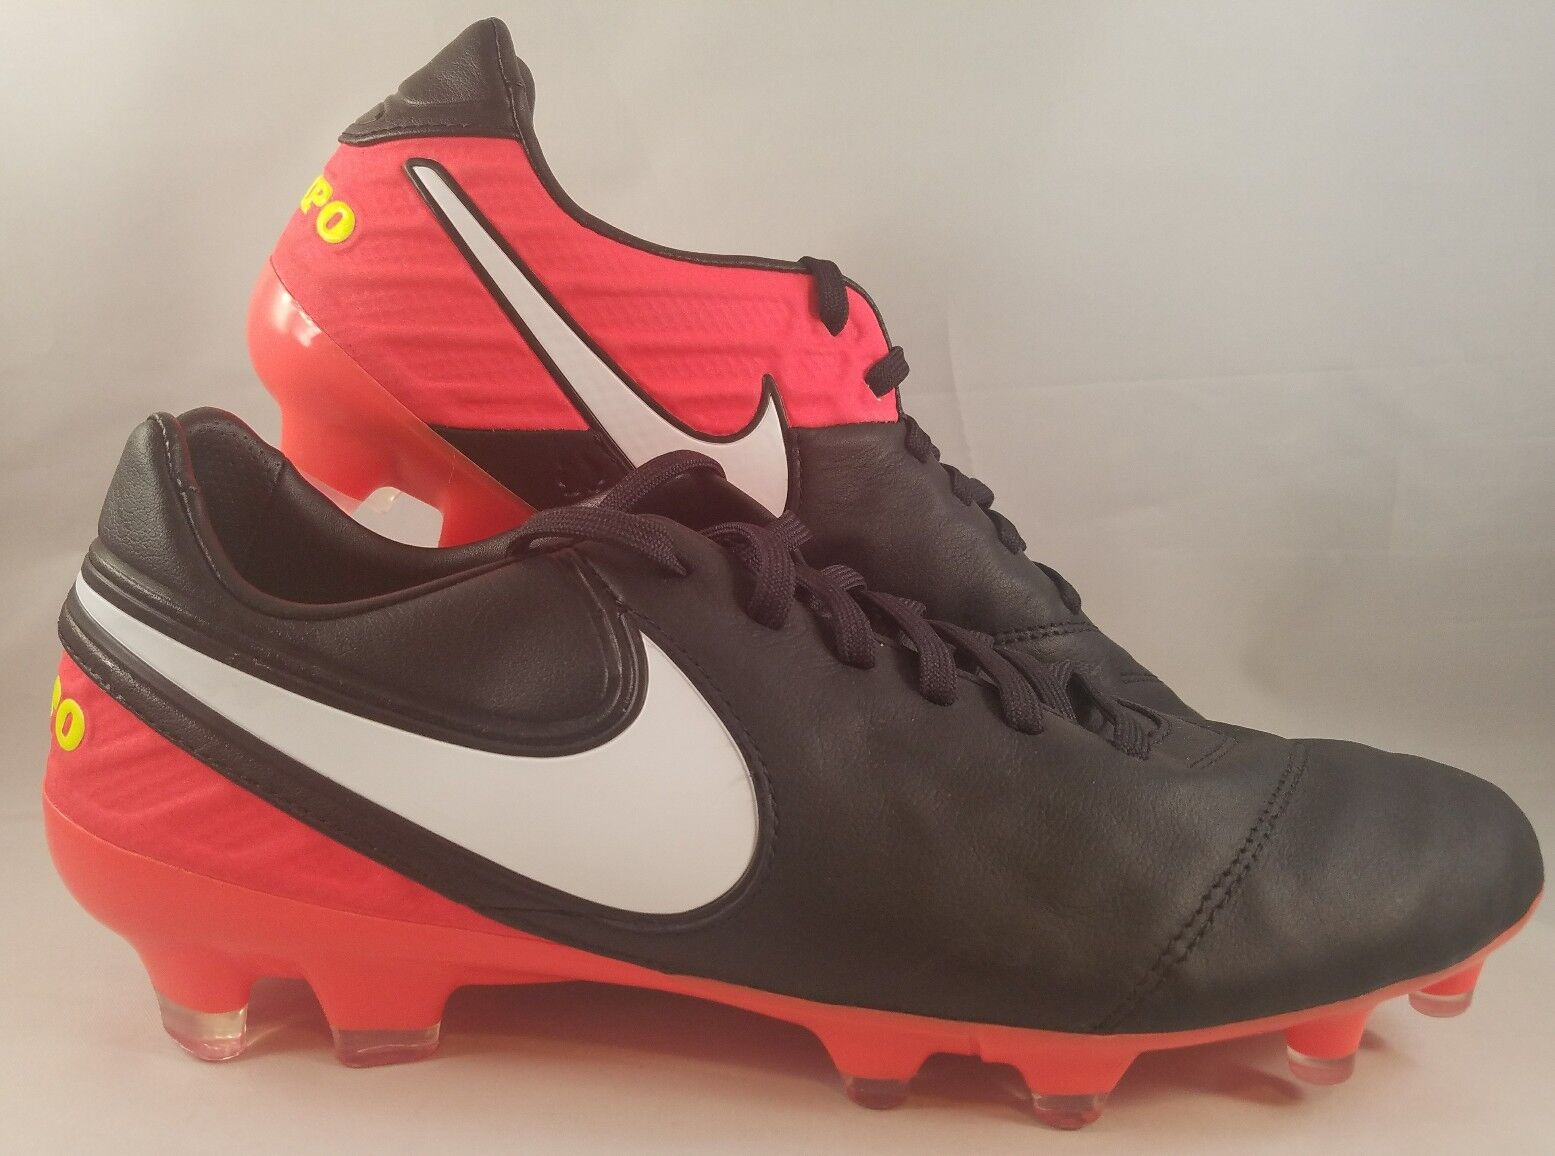 961f8627b59 Nike Tiempo Legacy II 2 FG Firm Ground Soccer Cleats 819218-018 Men Size 8